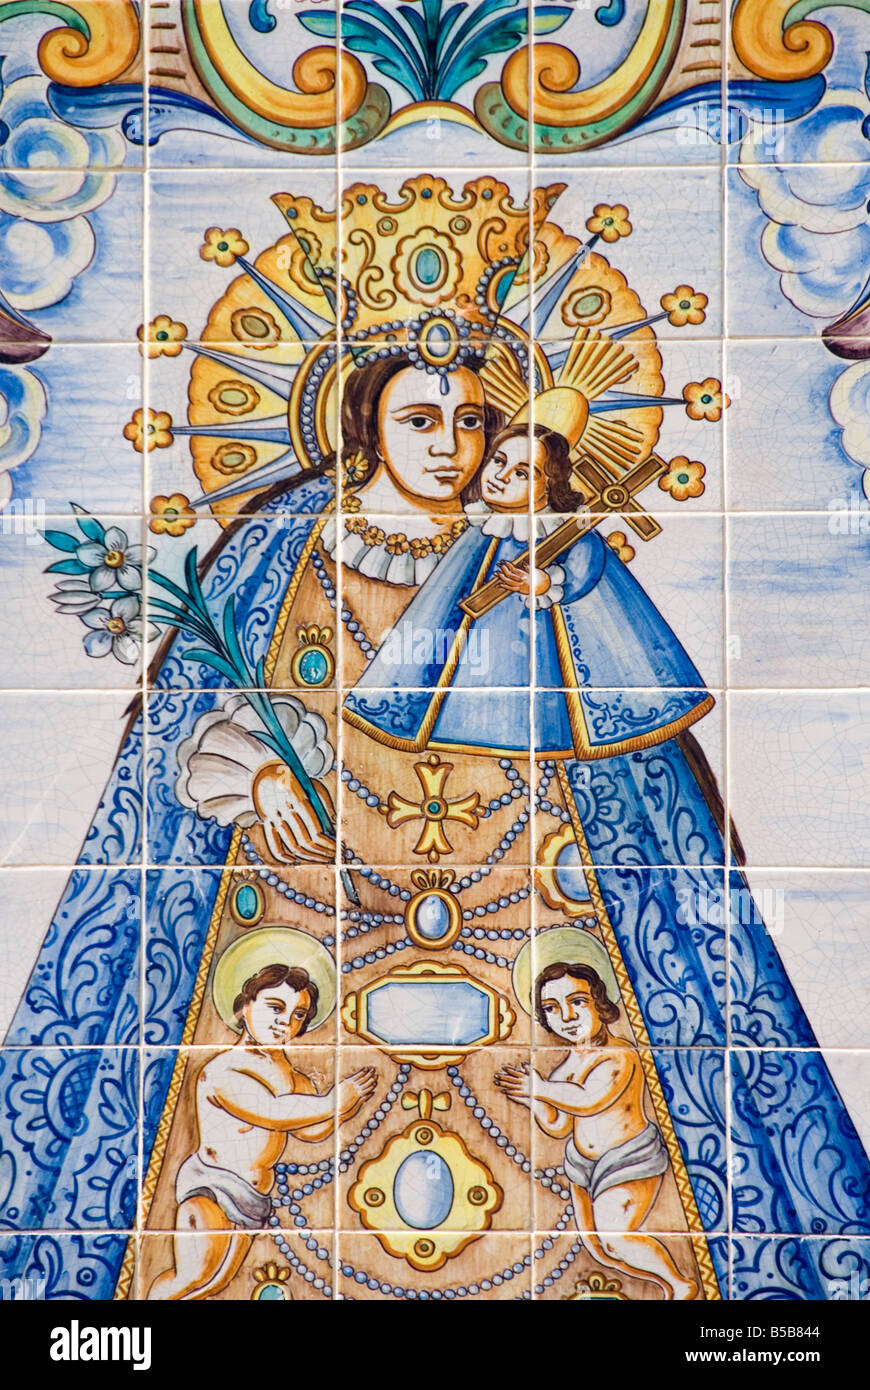 Hand painted glazed Azulejo tiles depicting the sacred statue and Patron Saint of the city of Valencia - Stock Image